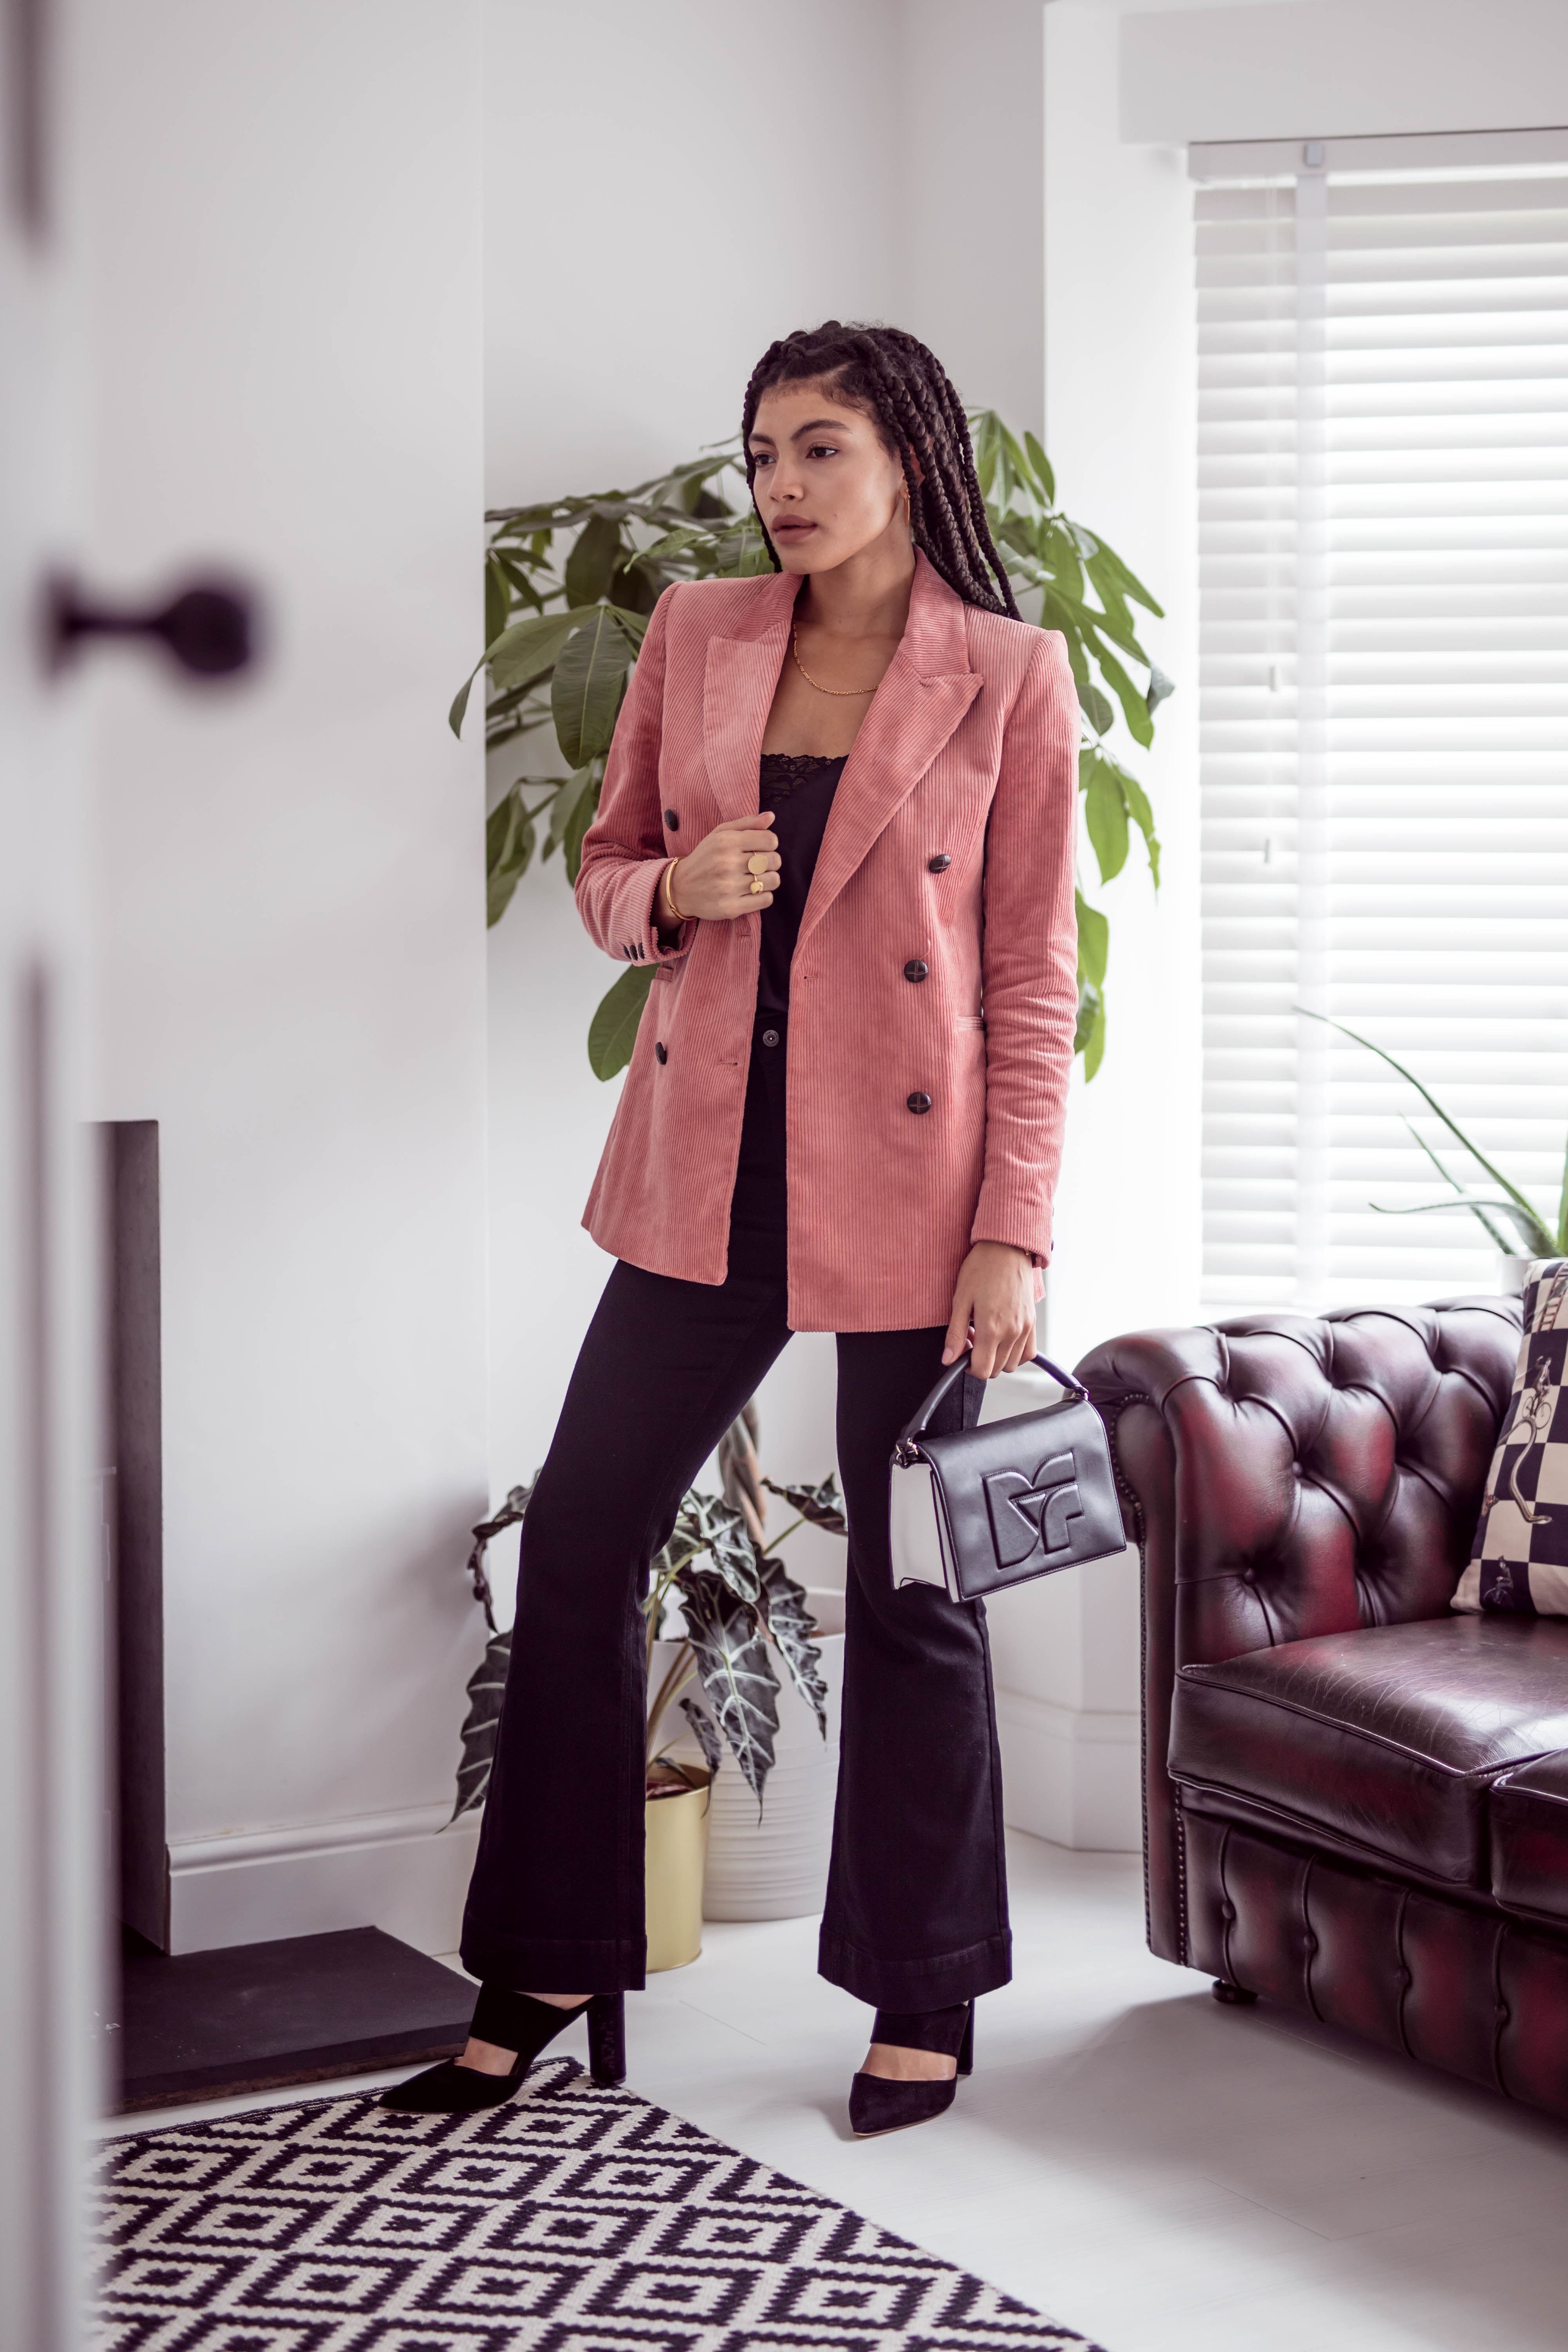 Double Breasted Corduroy Blazer and black denim flares outfit